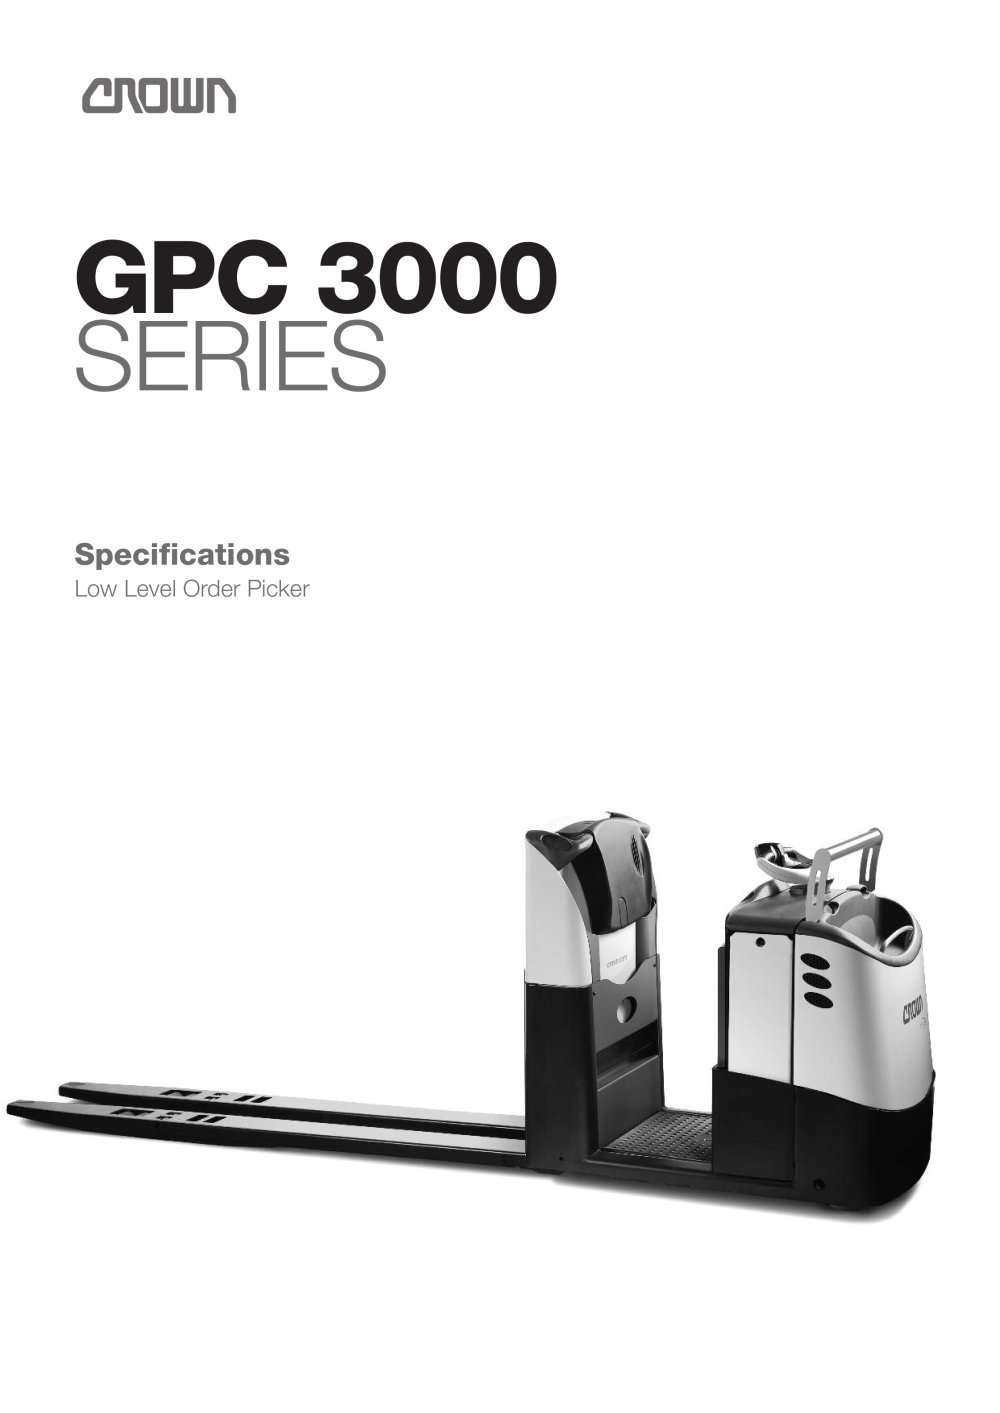 Order Picker GPC 3000 series - 1 / 6 Pages